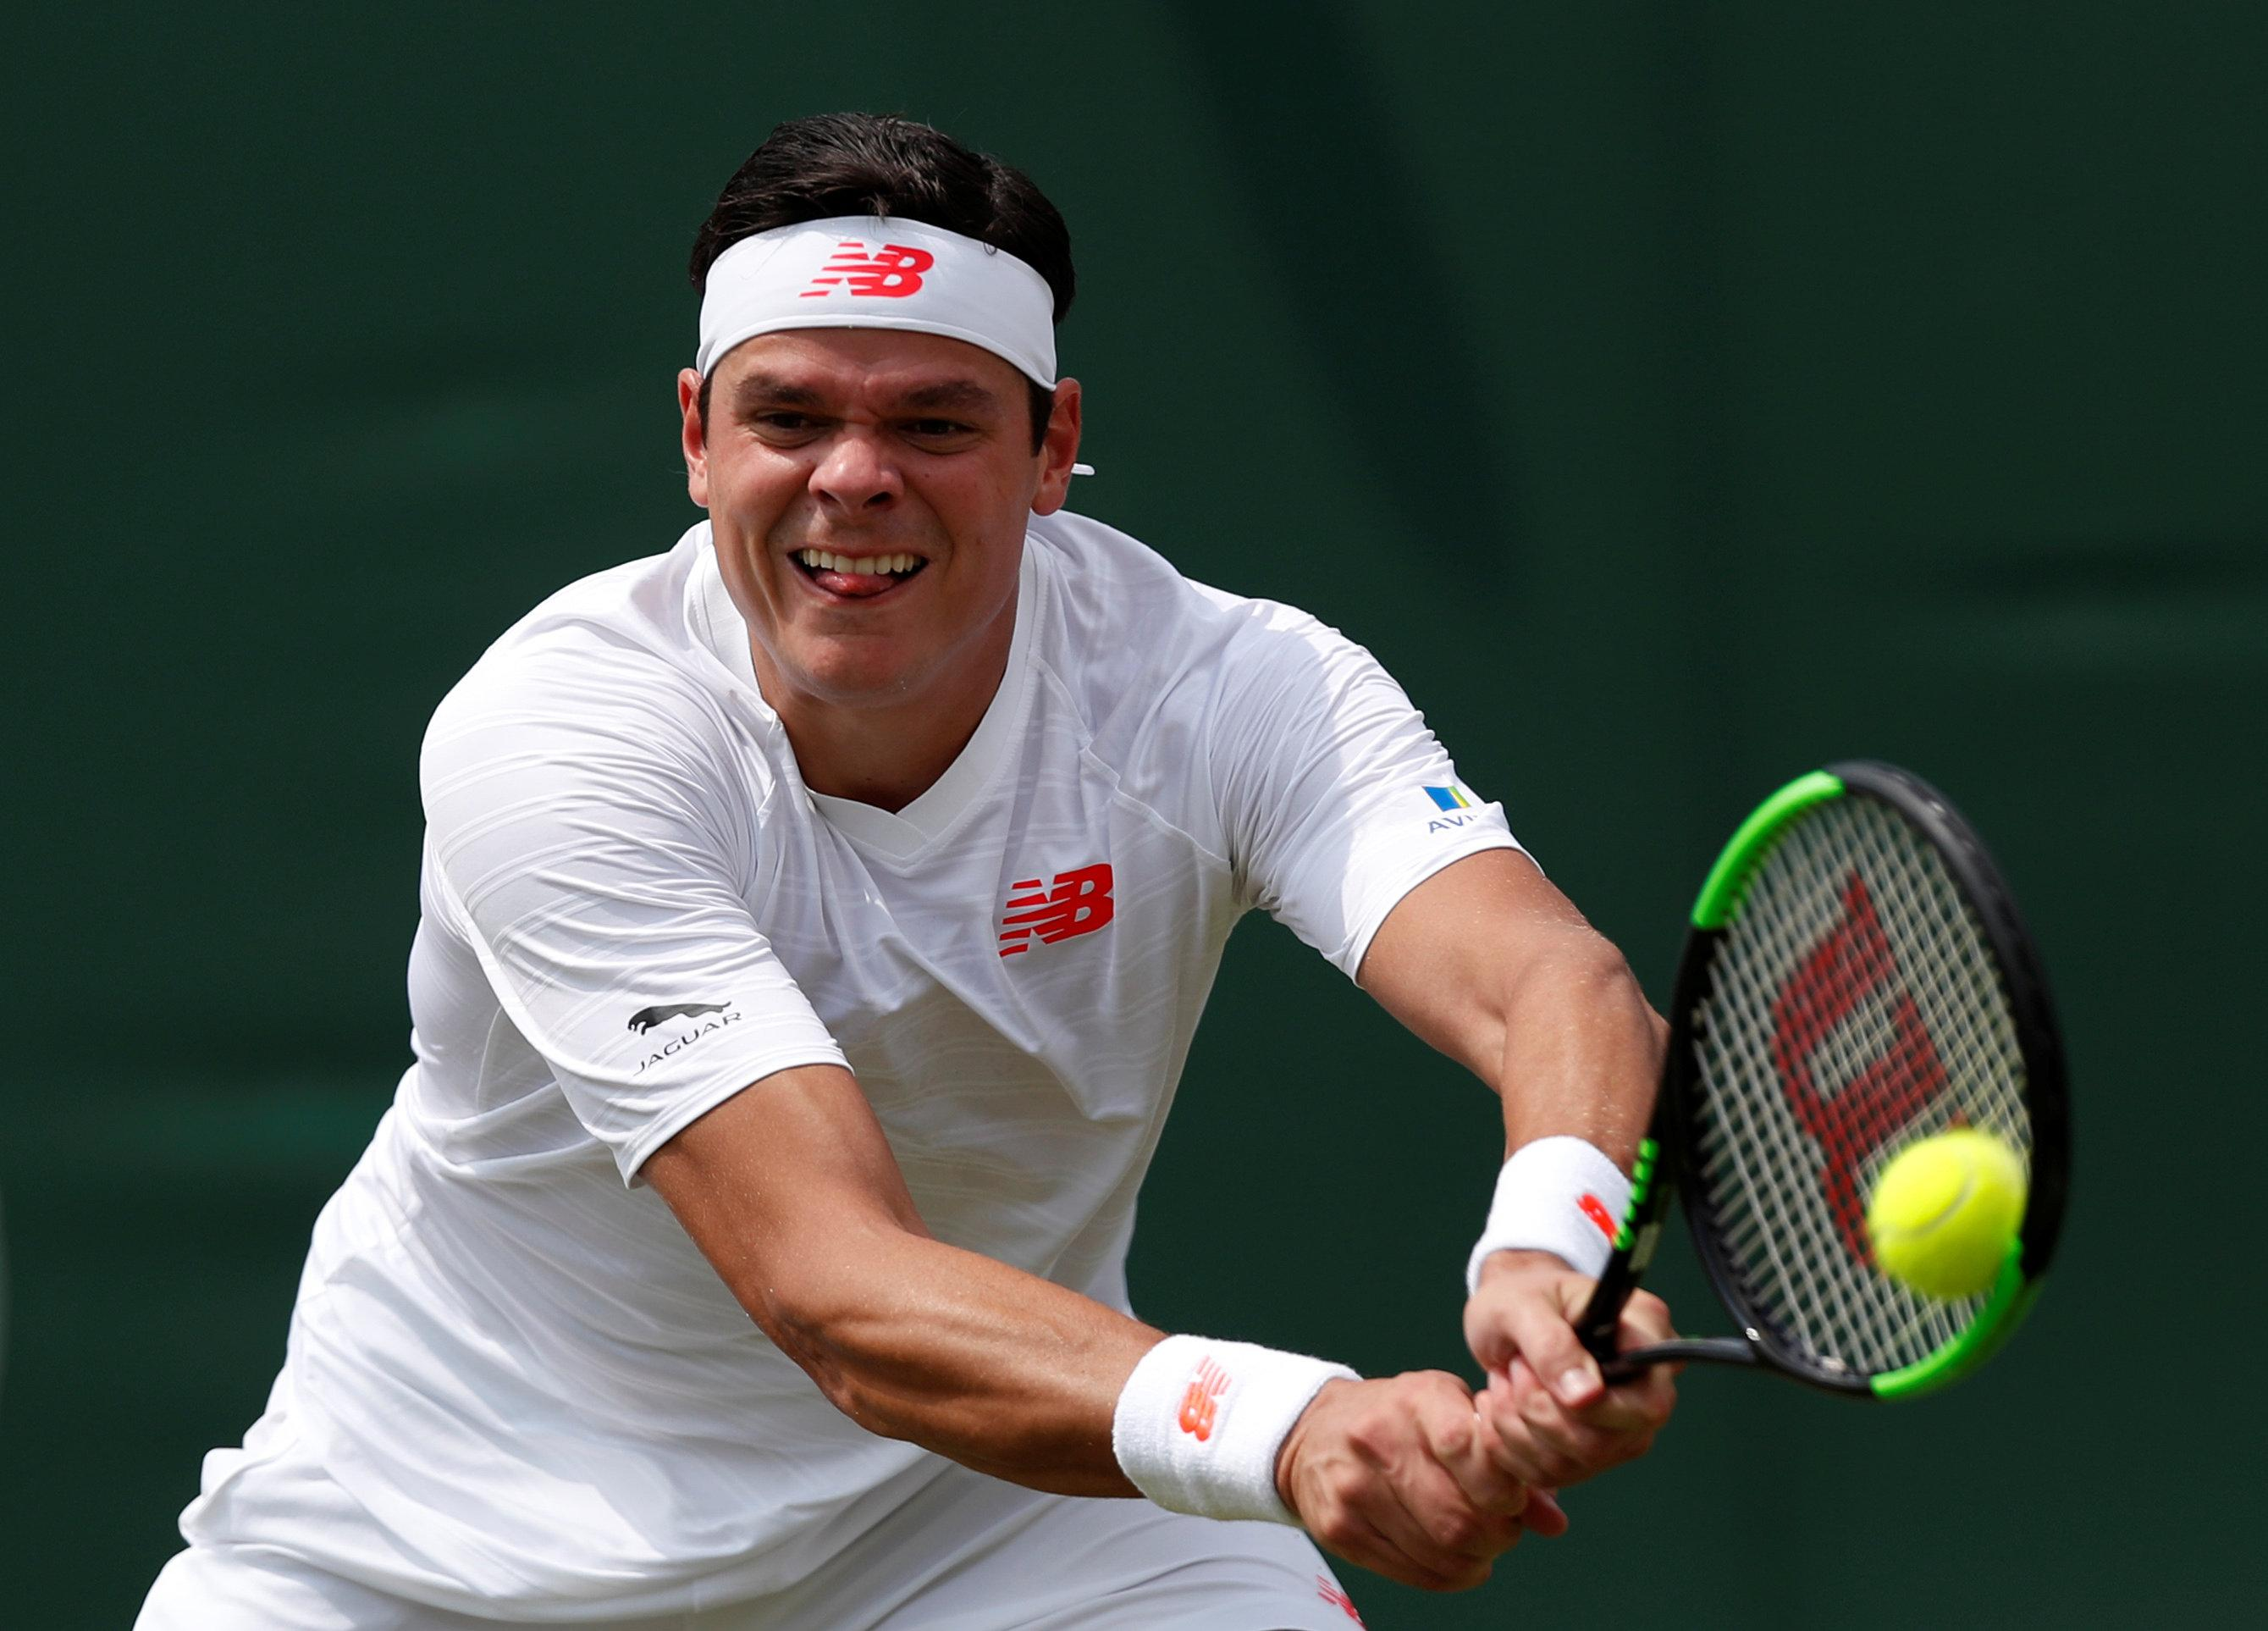 Milos Raonic is expected to power his way into the quarter-finals